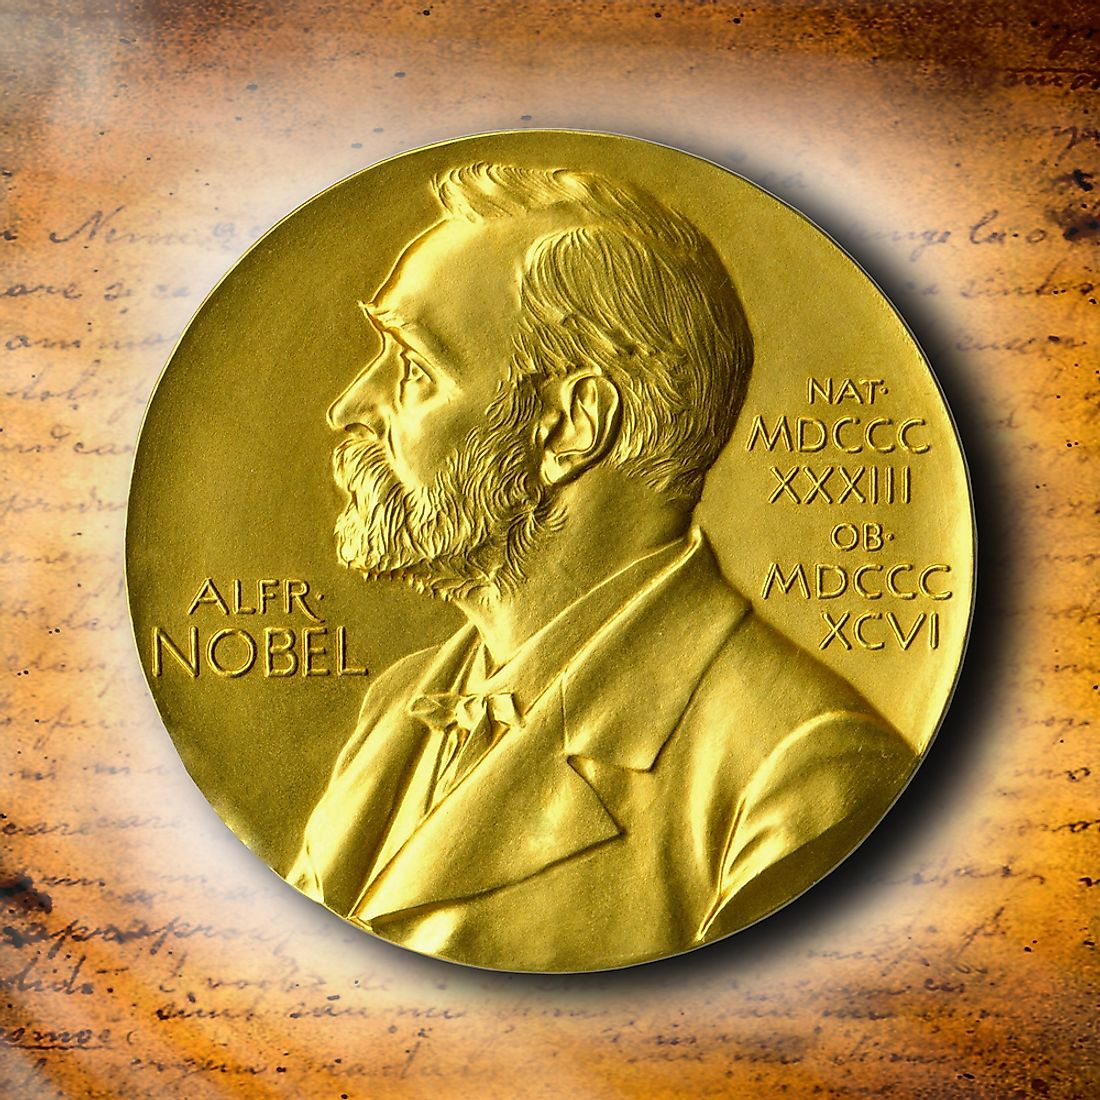 The establishment of Nobel Prize was by the will of Alfred Nobel, and usually occurs on his death anniversary, the 10th of December every year.